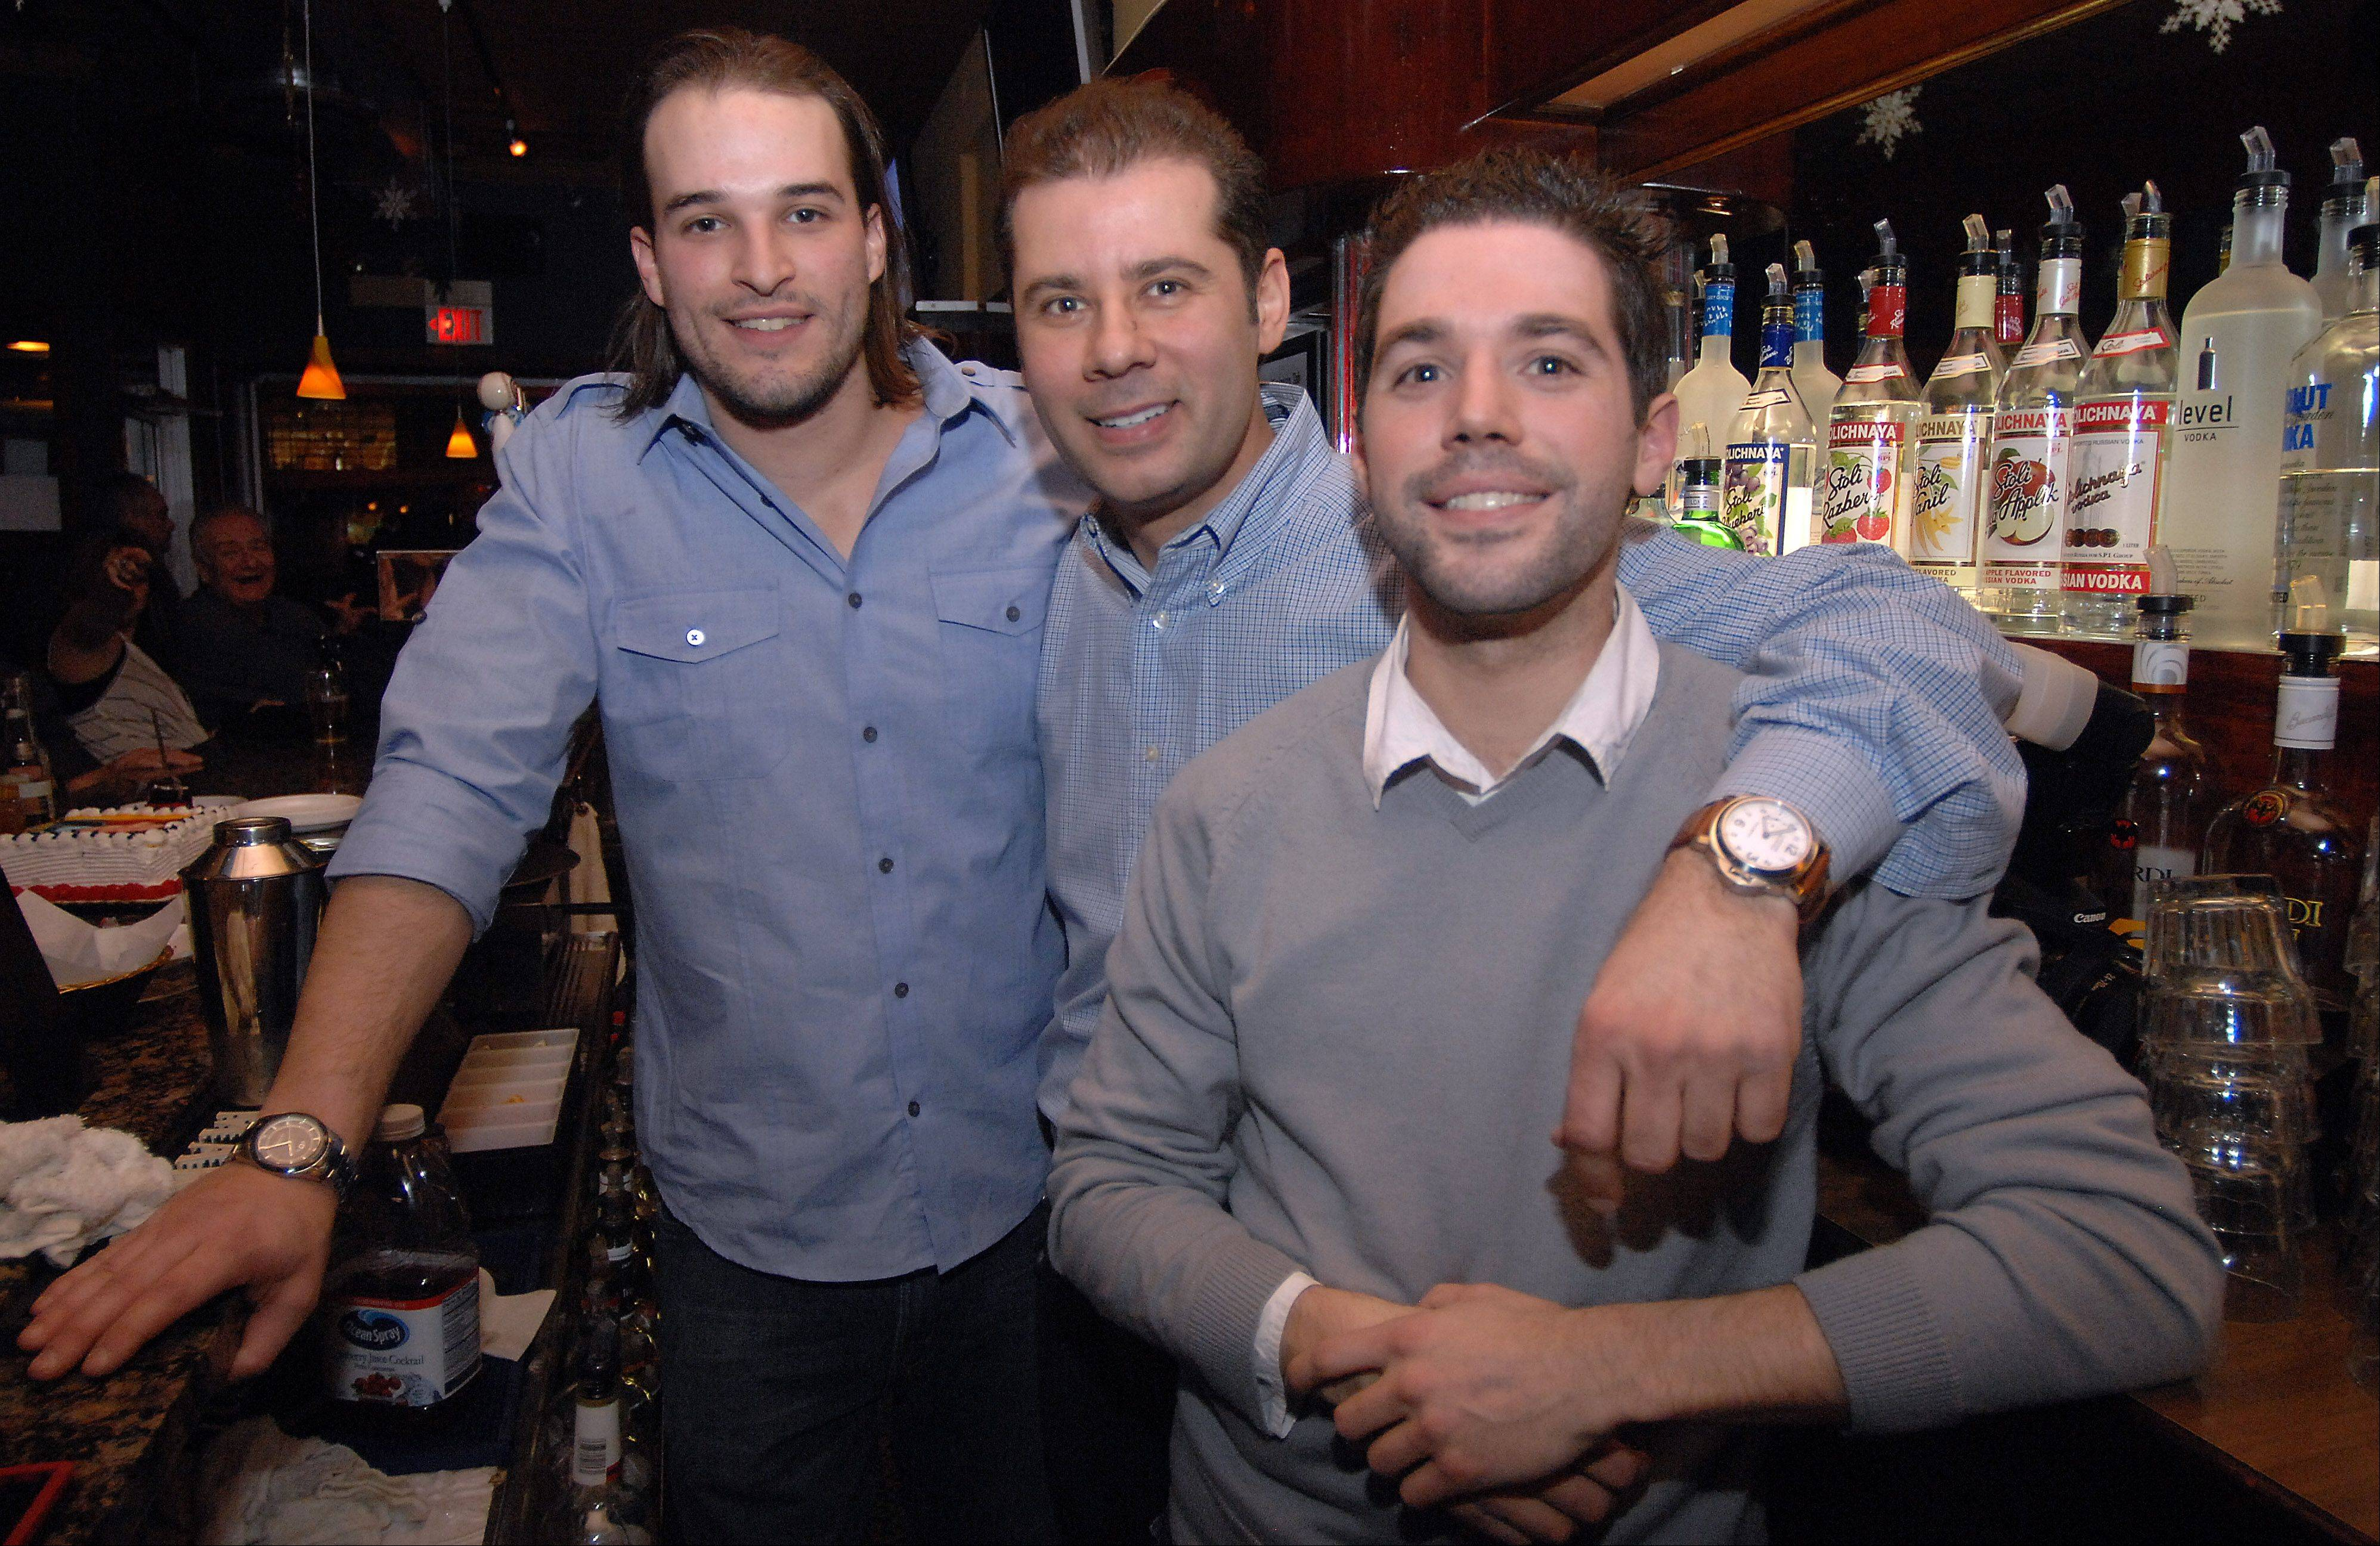 The 3 Gs -- the new ownership group behind the Miner Street Tavern in downtown Des Plaines -- are Alex Giannikoulis, John Grammatis and Kostas Giannikoulis. The tavern will still serve patrons until 4 a.m.